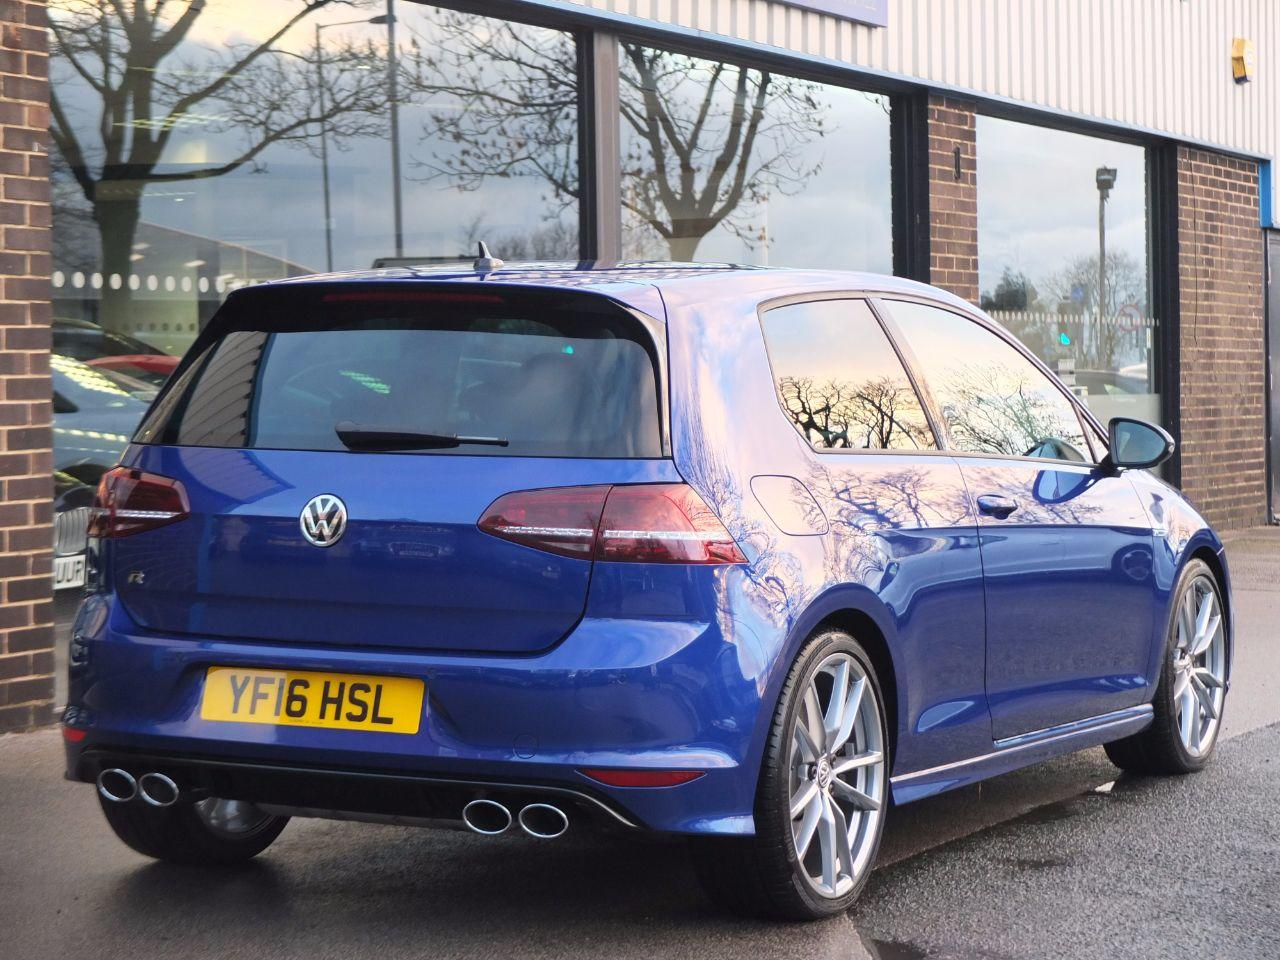 Volkswagen Golf 2.0 TSI R 3 door Manual 6 Speed Hatchback Petrol Lapiz Blue Metallic